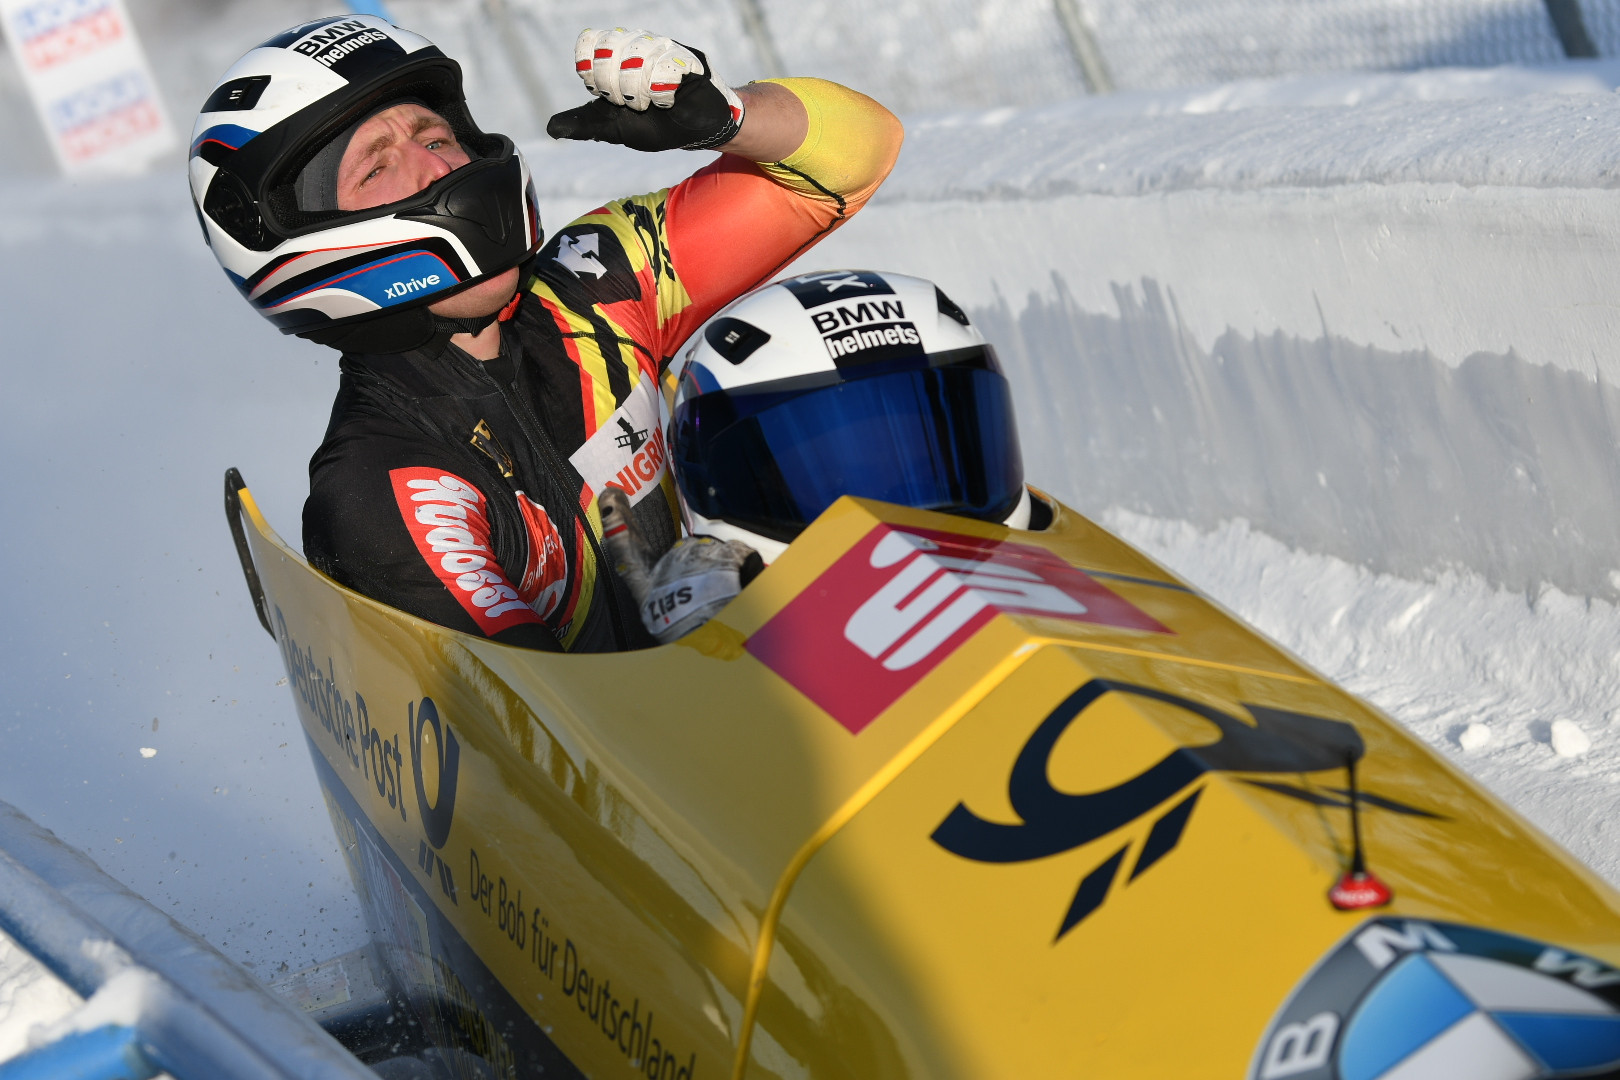 Two-man victory in Calgary seals historic unbeaten season for Friedrich at IBSF World Cup